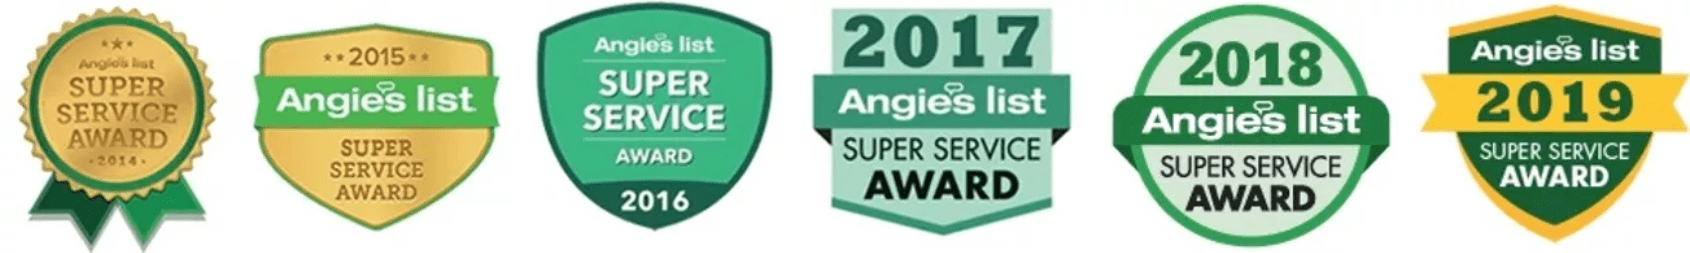 Super Service Awards for 2014, 2015, 2016, 2017, 2018 and 2019